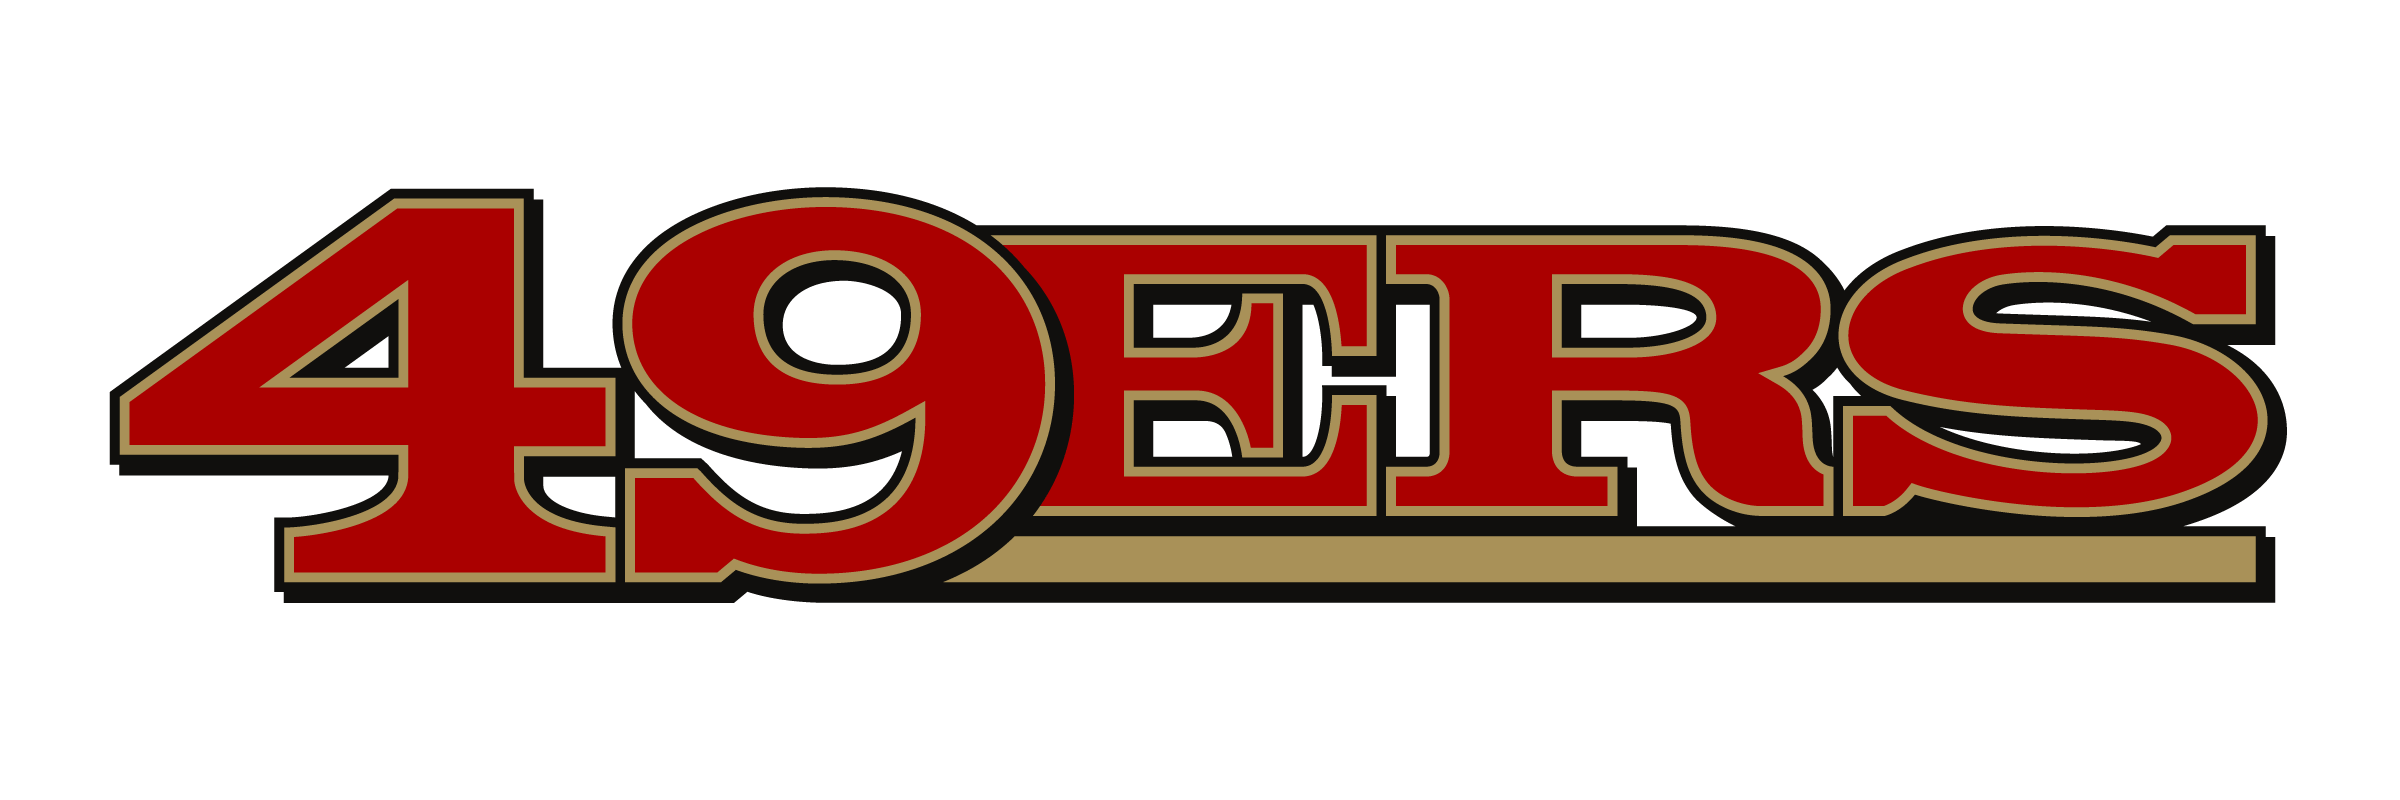 49ers Clipart at GetDrawings.com | Free for personal use